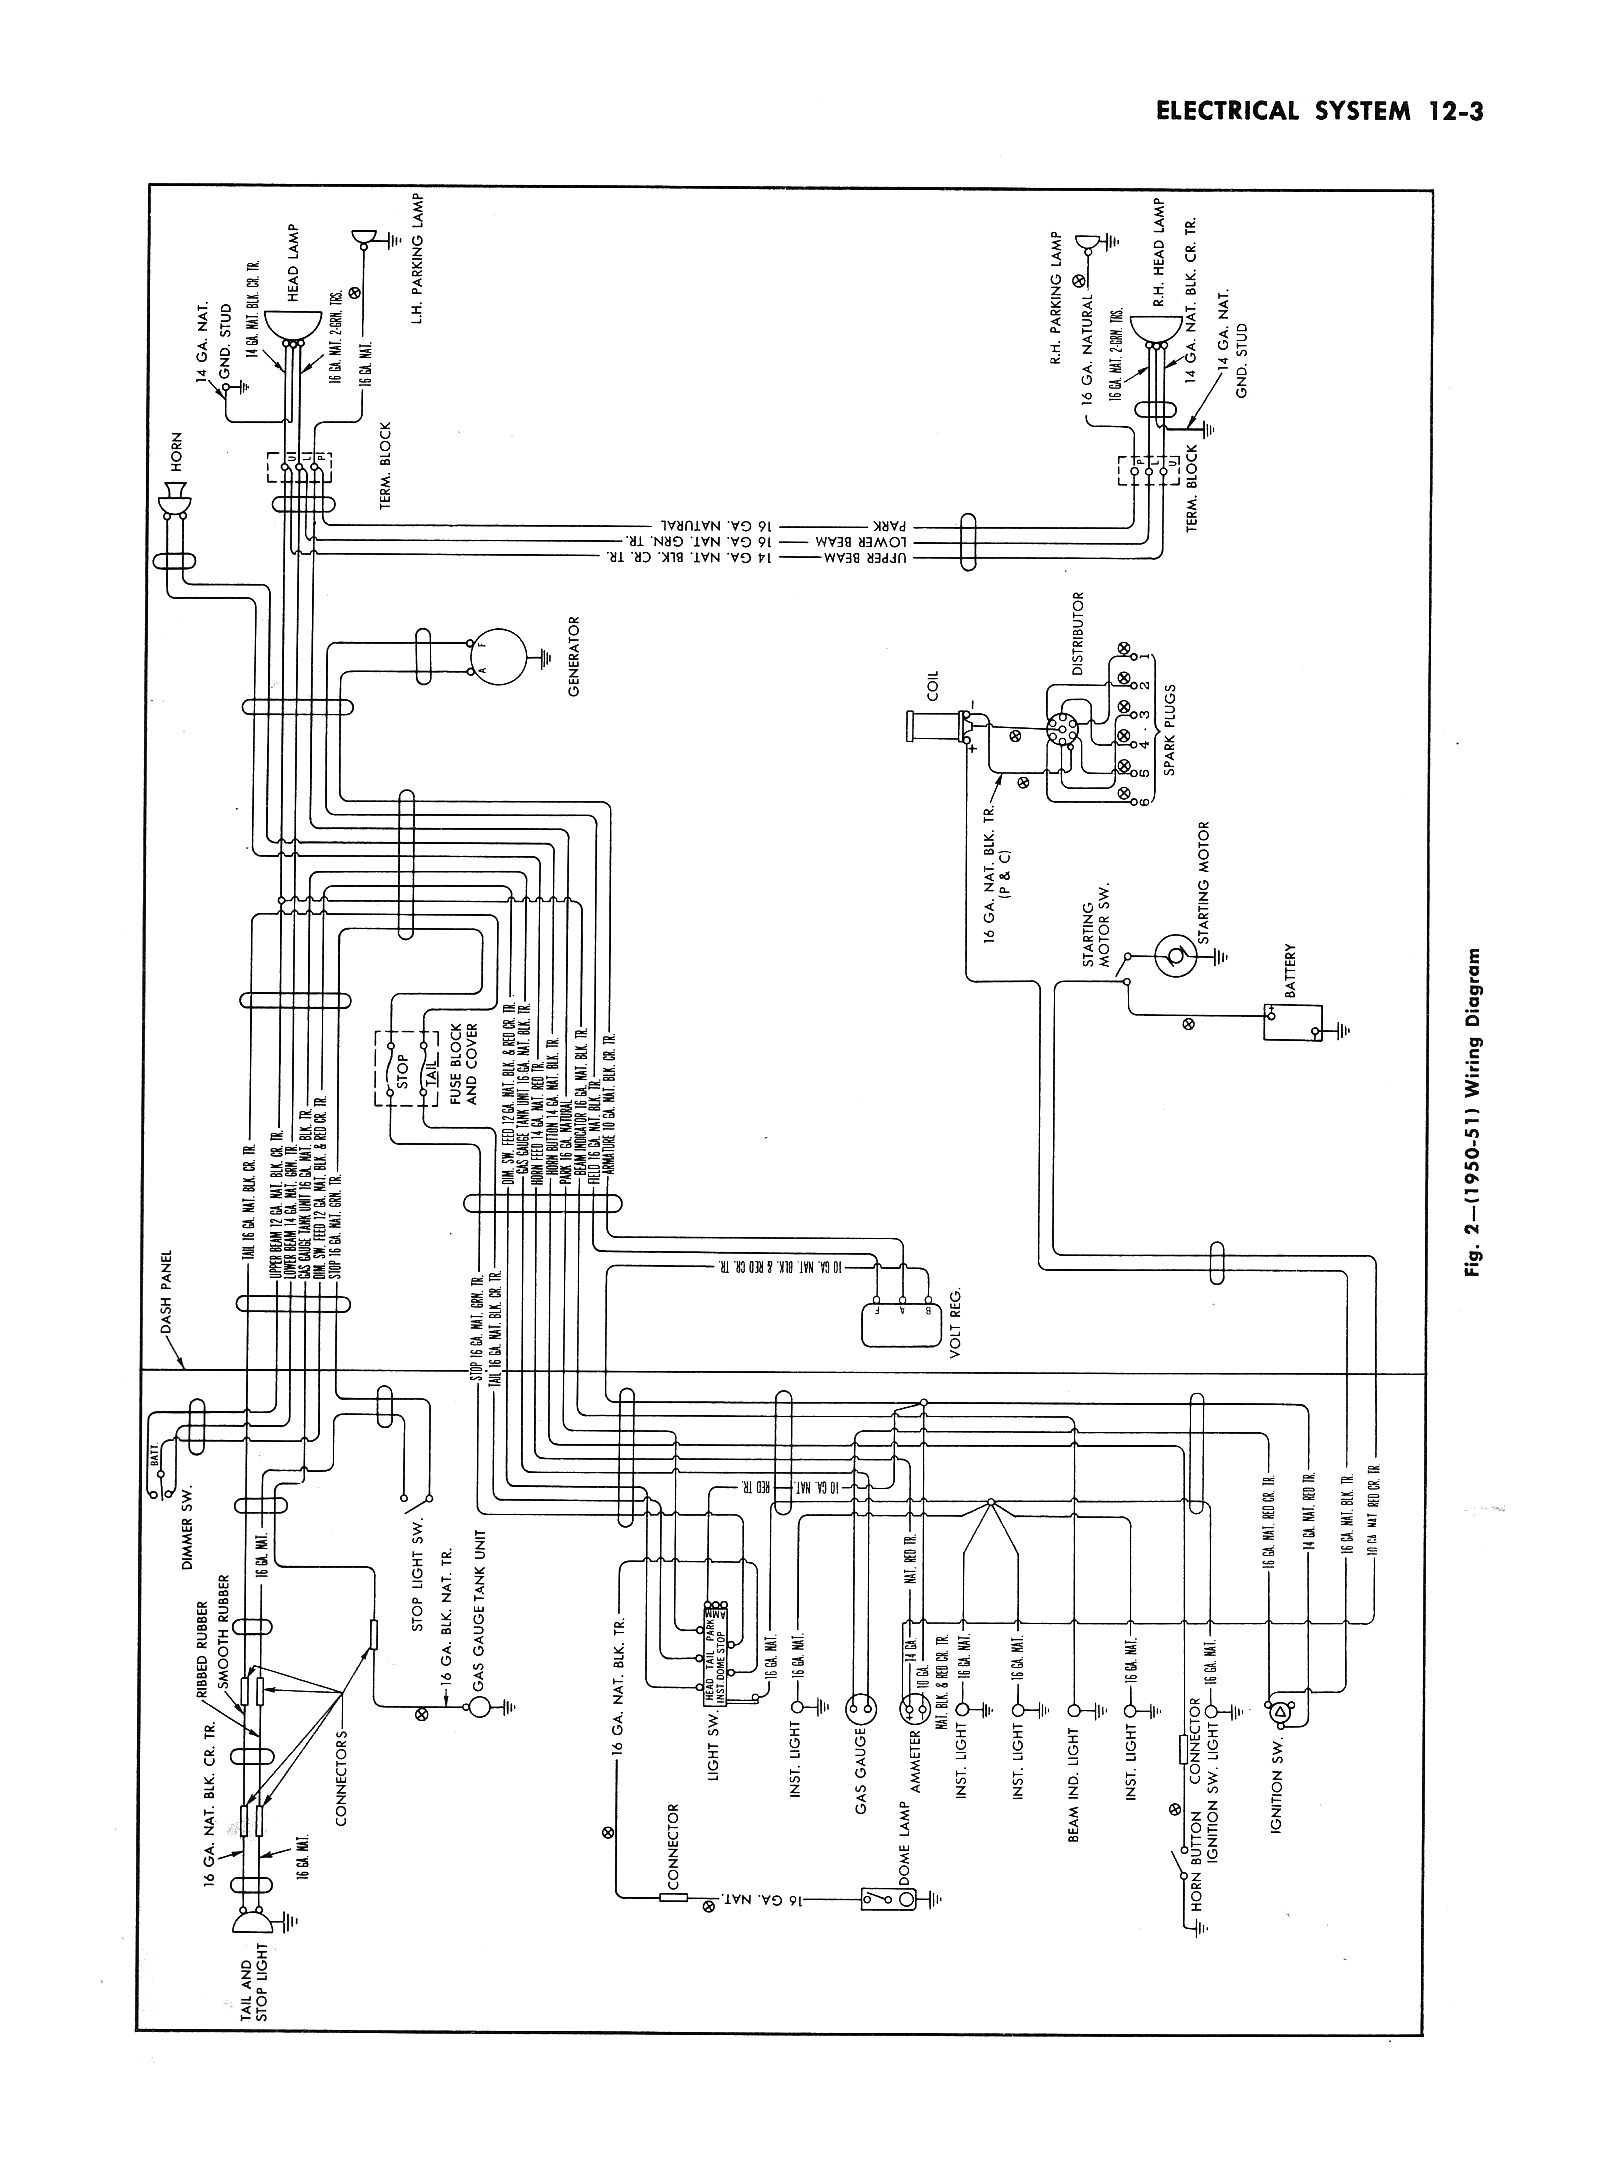 Wiring Diagram For A 1969 Chevy Truck Wiring Diagram For